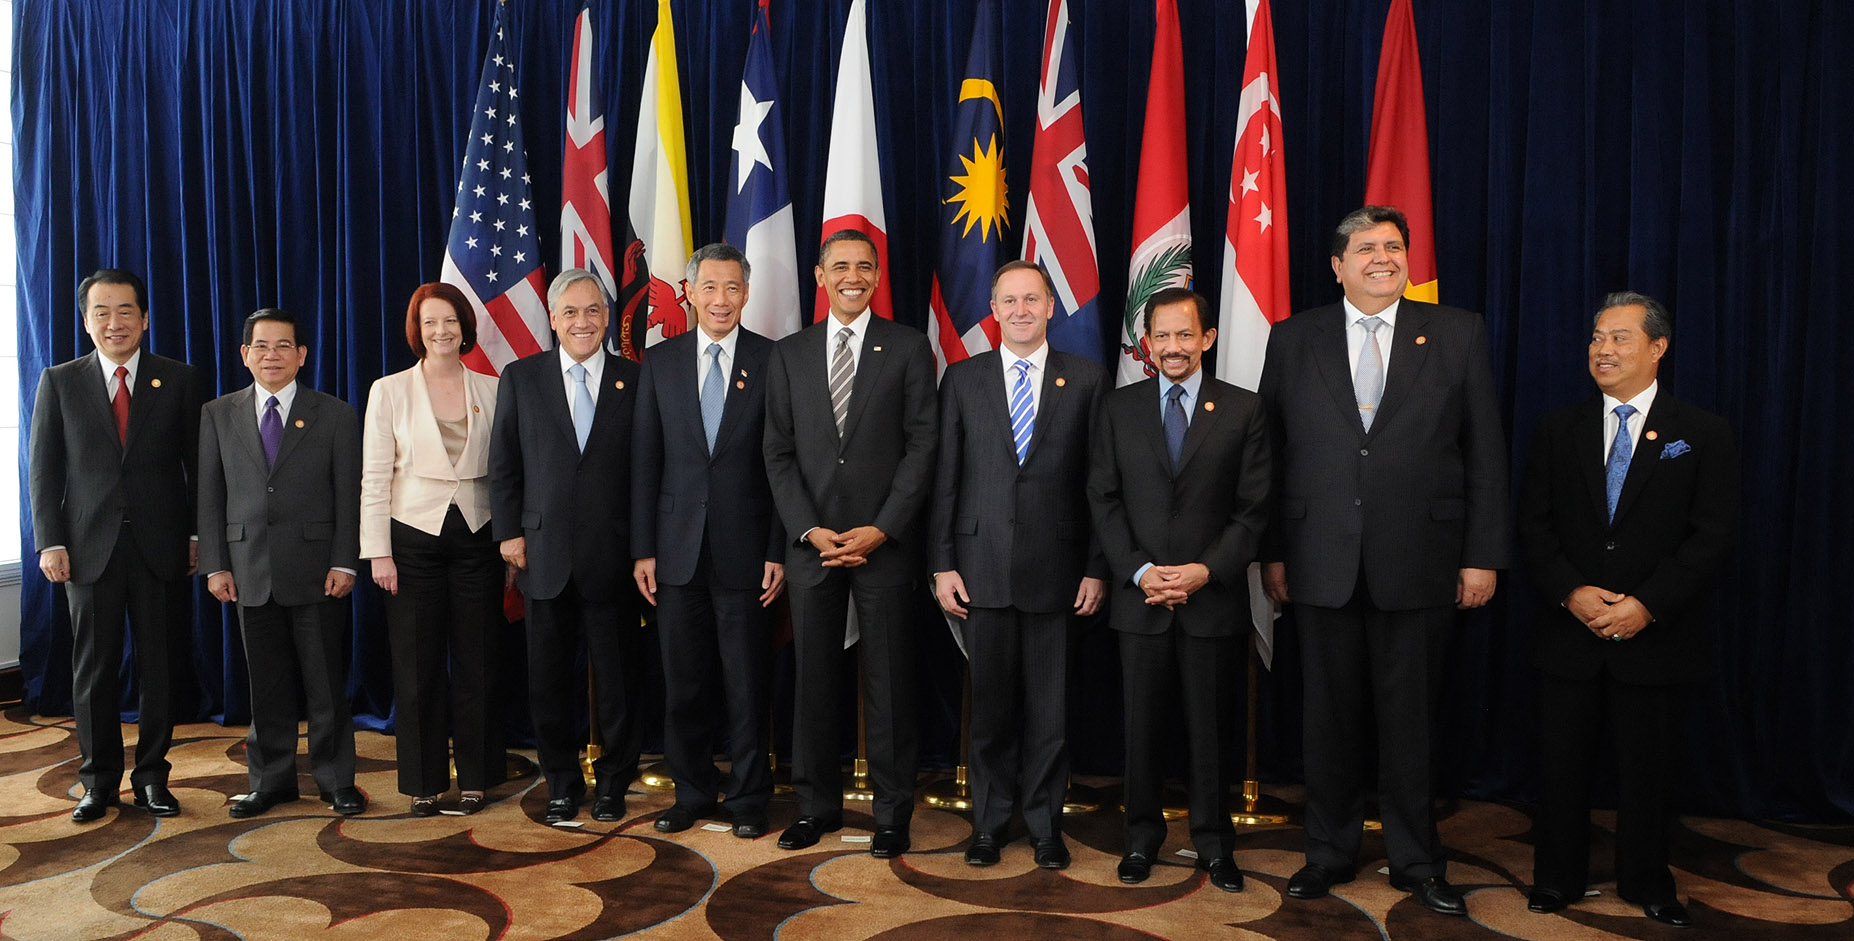 Open Fire and Open Markets: The Asia-Pacific Pivot and Trans-Pacific Partnership